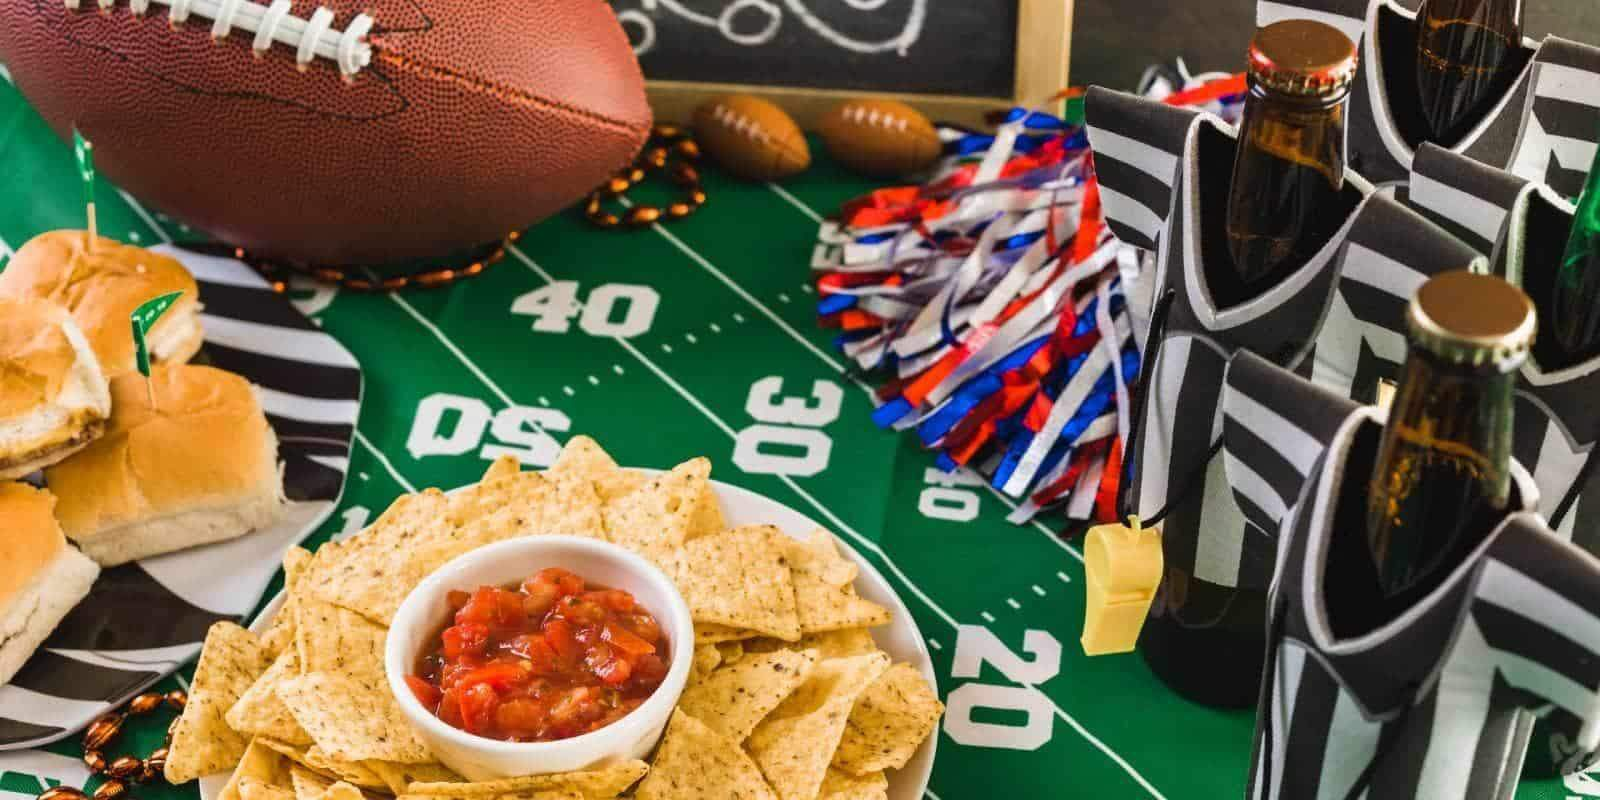 5 Restaurant Marketing Tips For Super Bowl Weekend